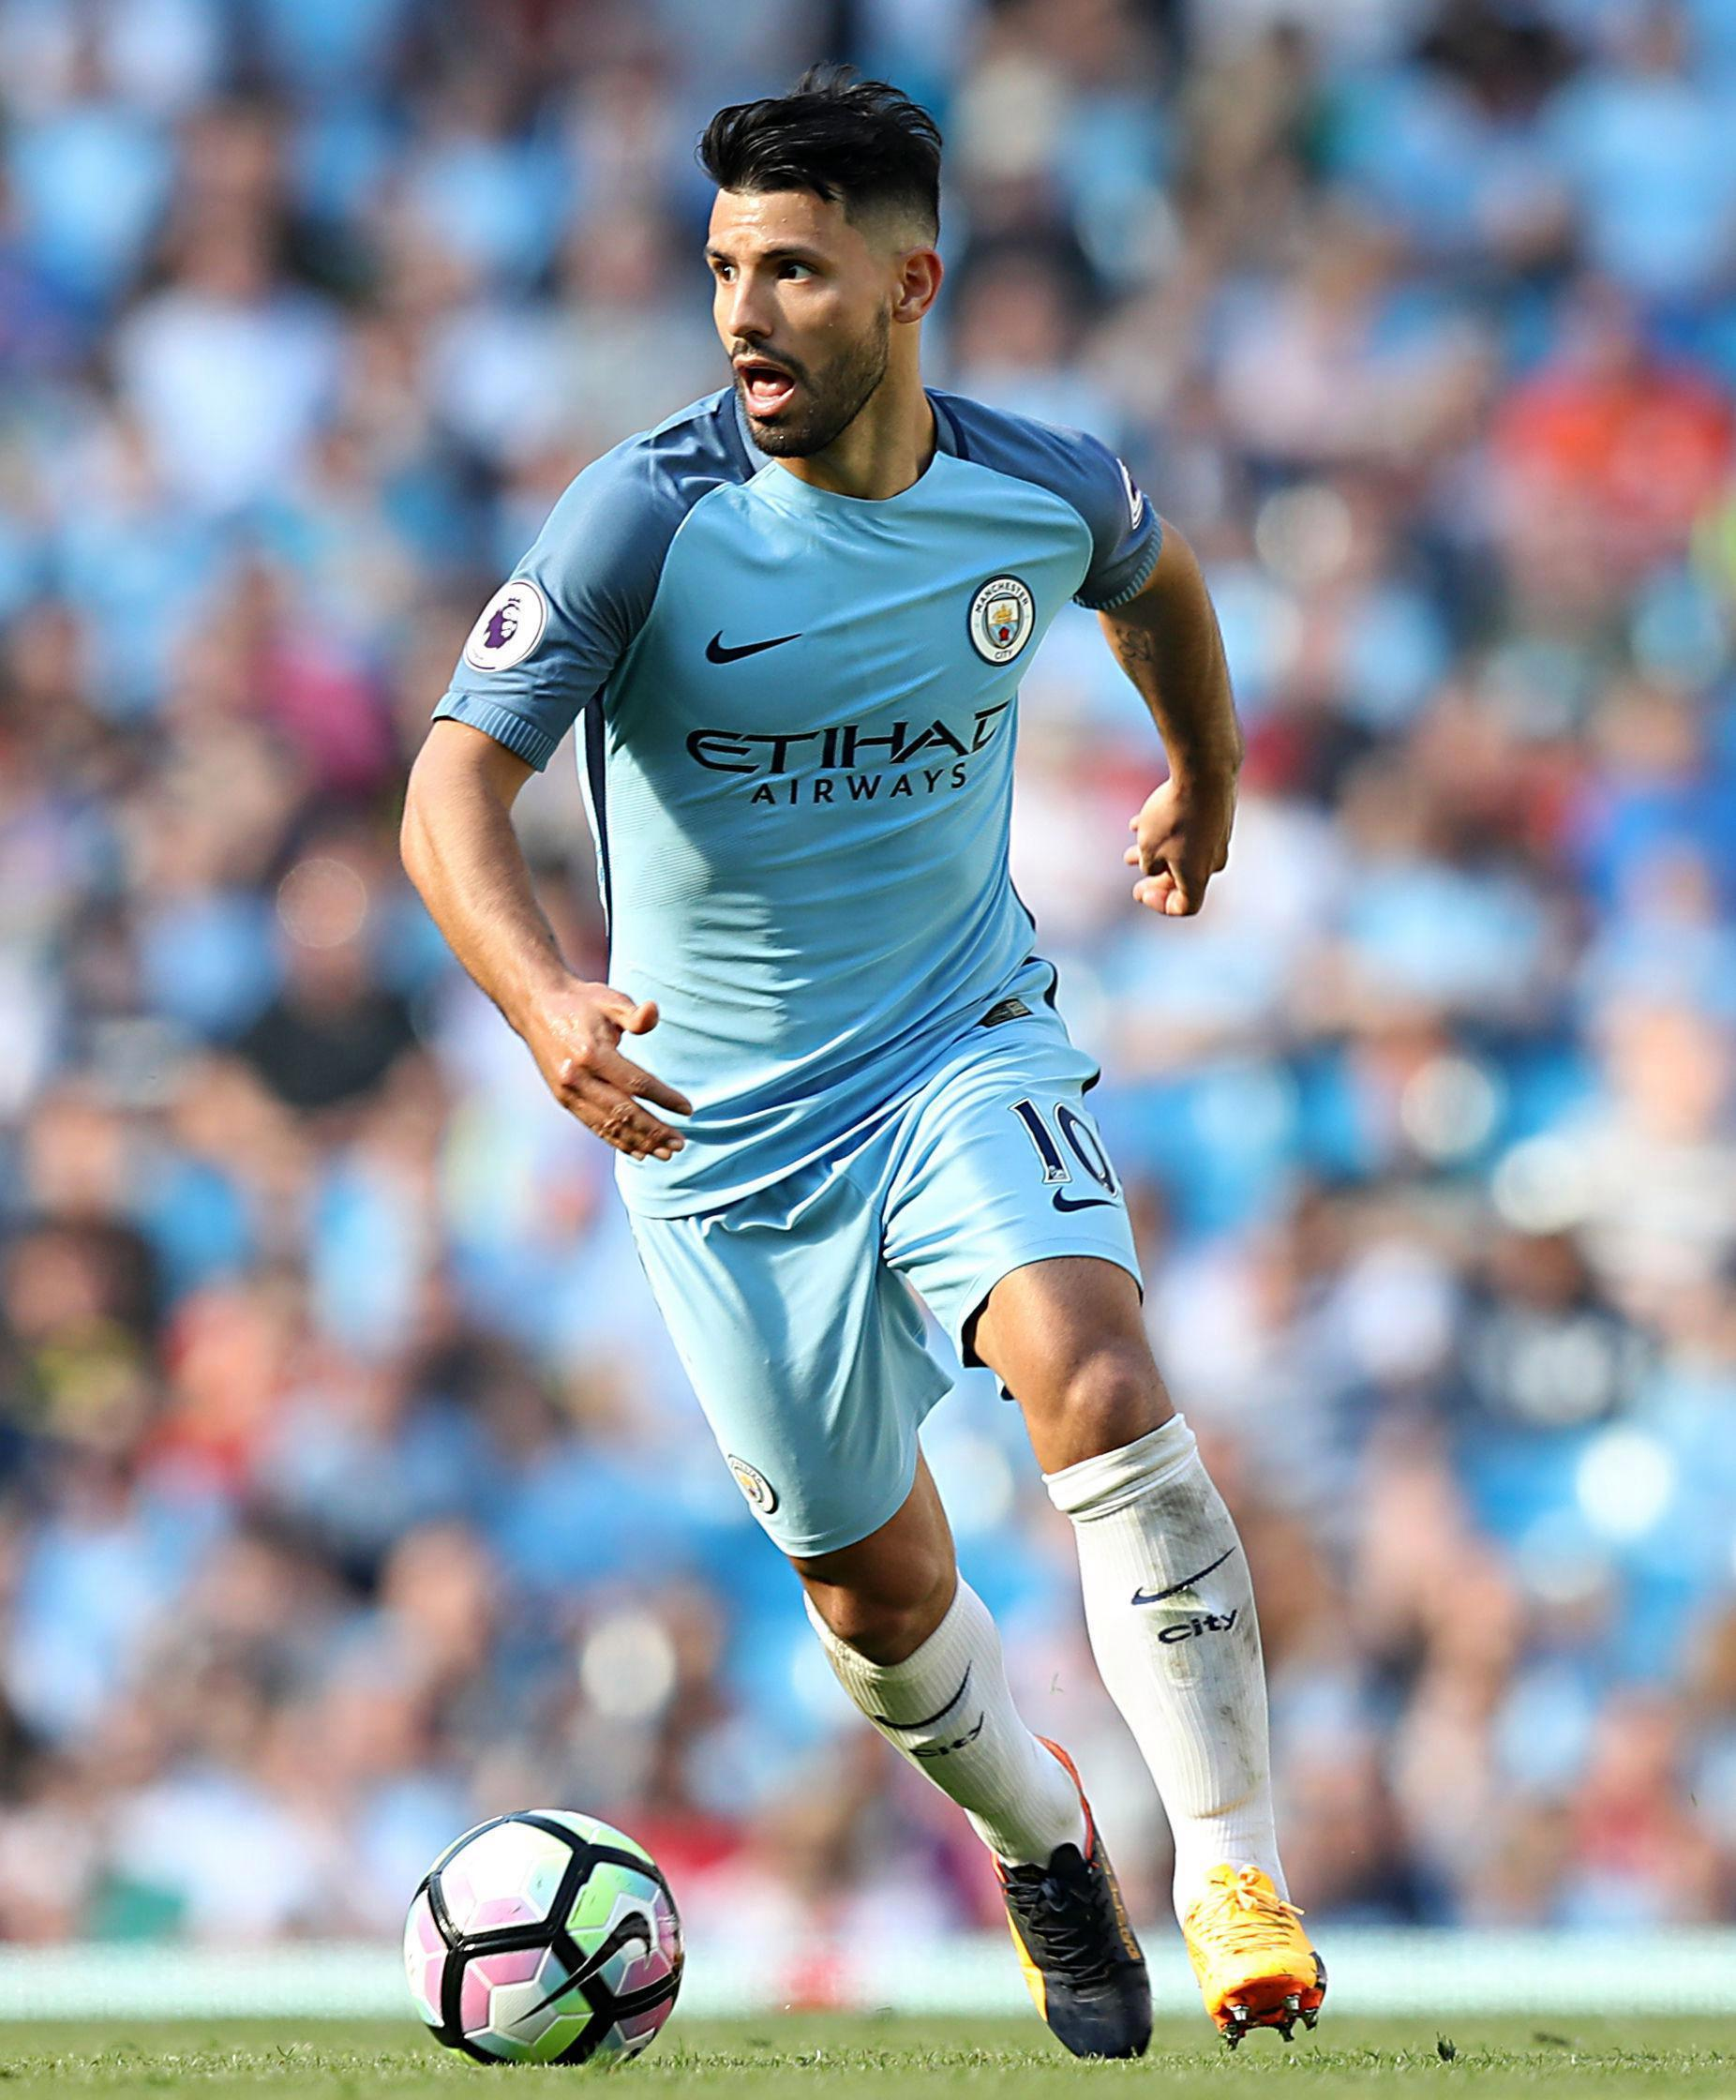 Sergio Aguero has scored 18 goals in the Premier League for Manchester City this season